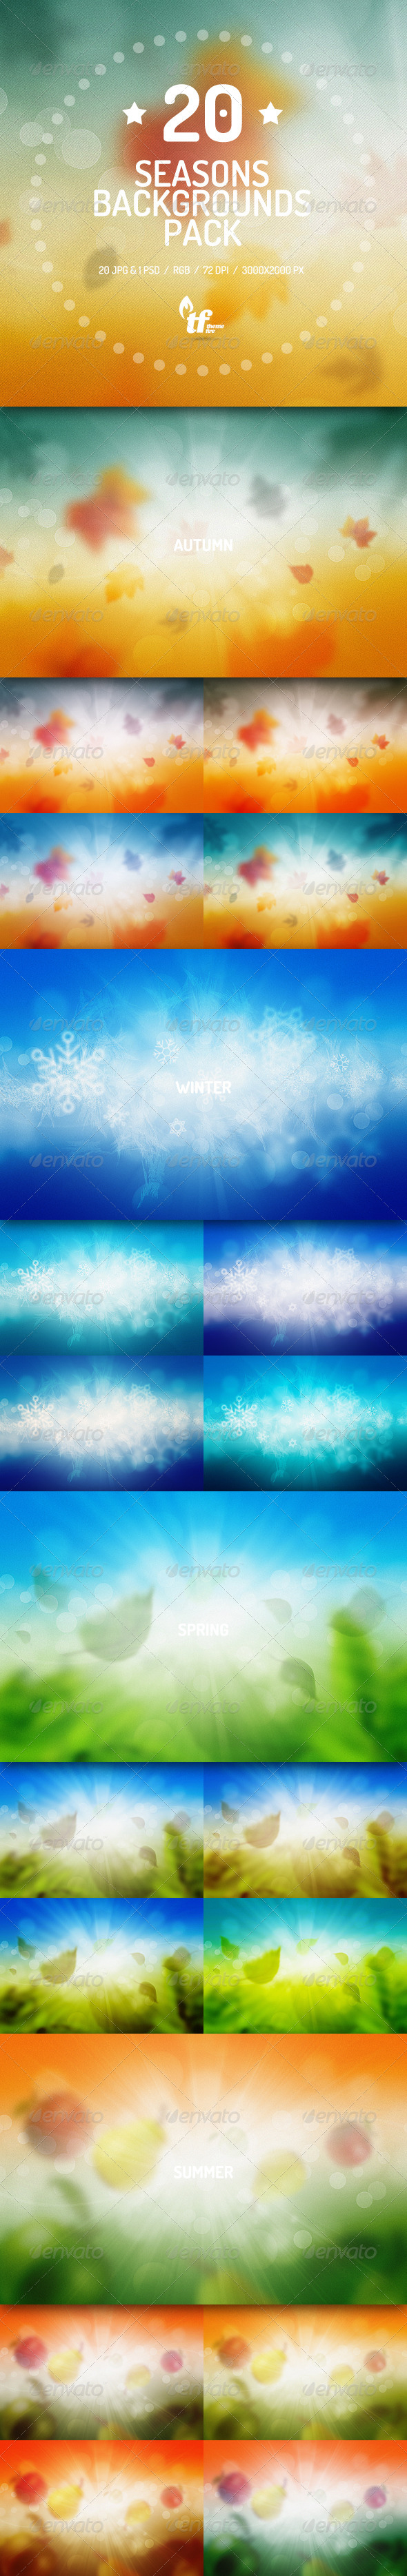 GraphicRiver 20 Seasons Blur Backgrounds Pack 7753975